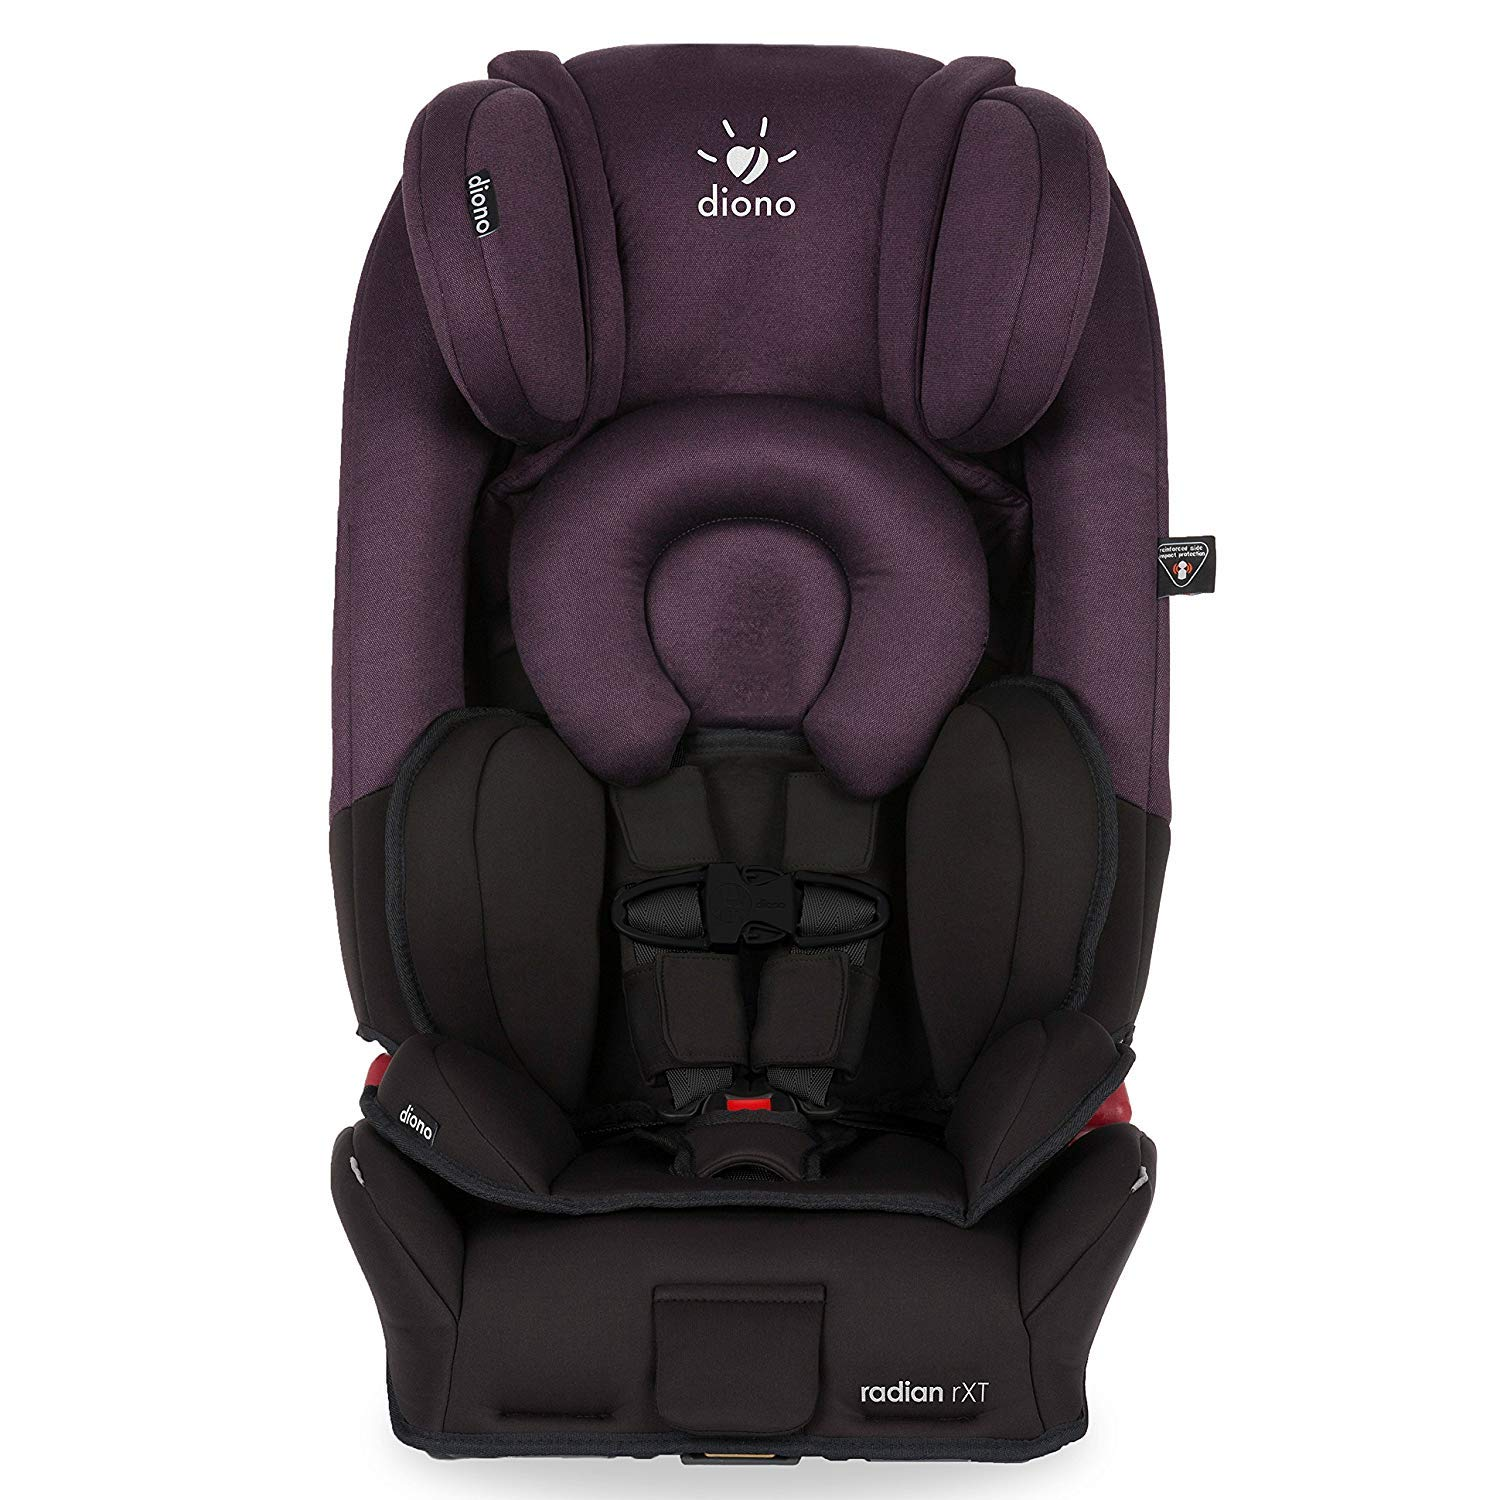 Diono Radian Rxt All In One Convertible Car Seat For Children From Birth To 120 Pounds Black Plum